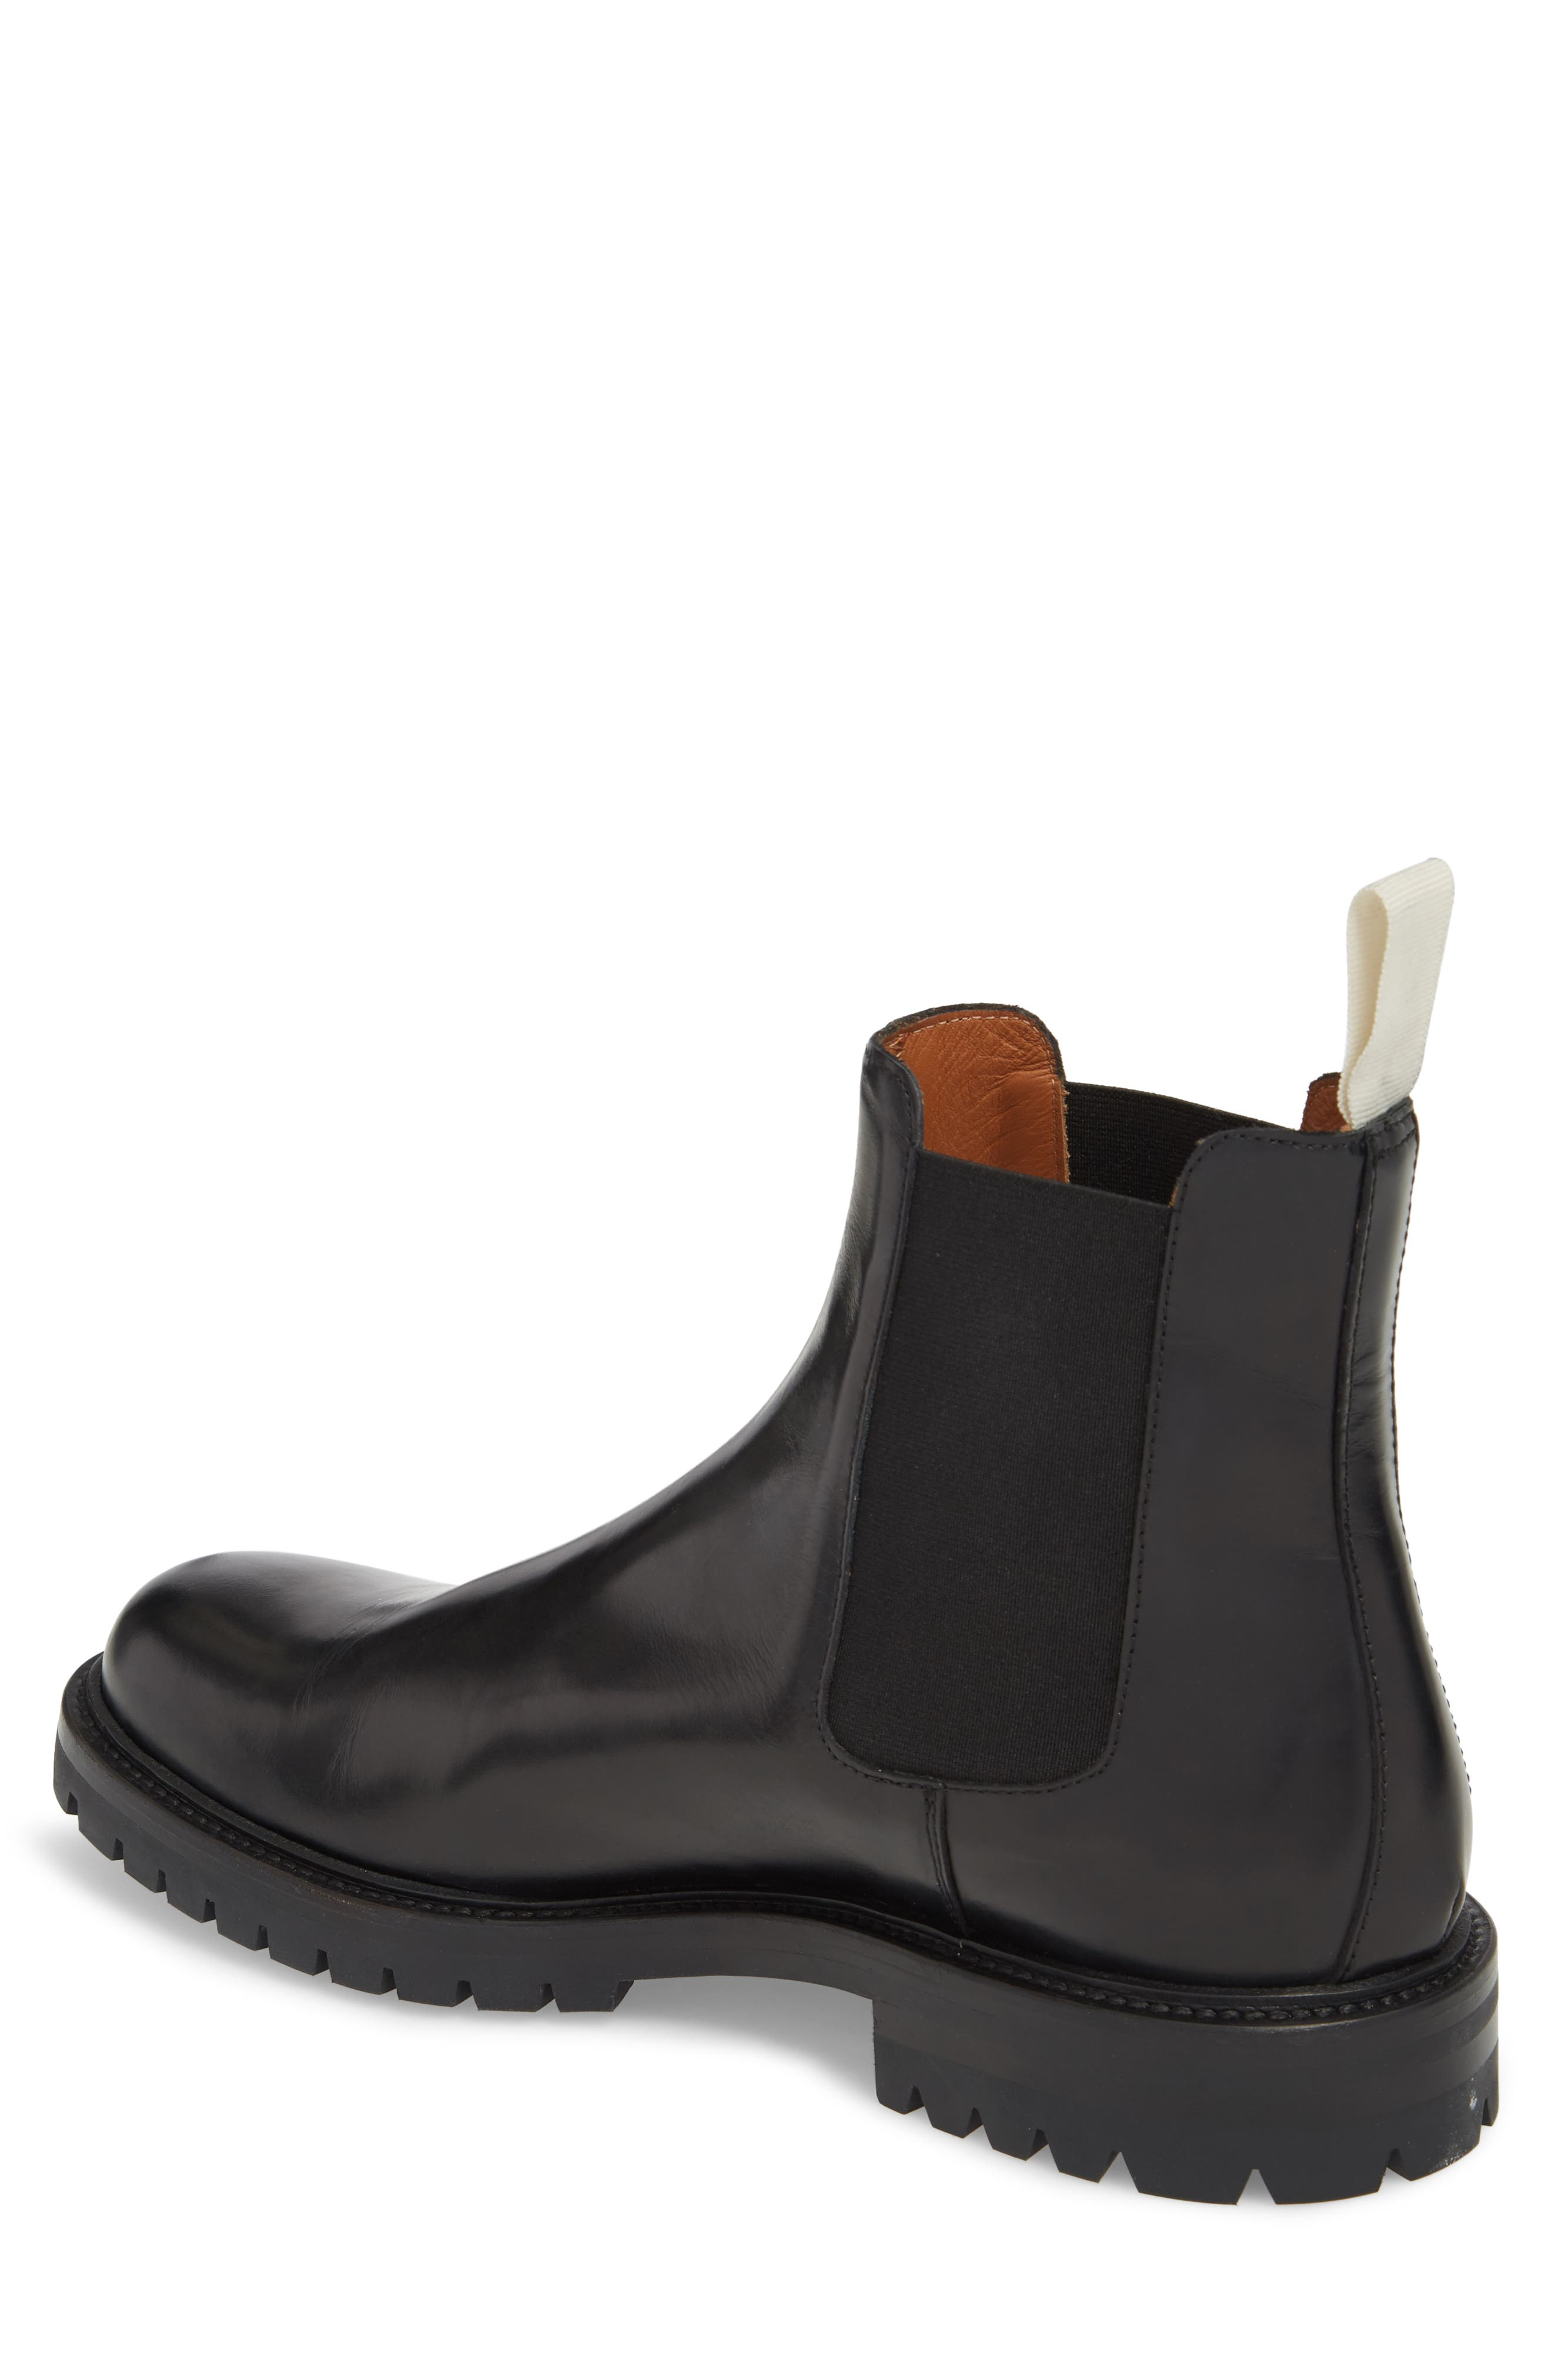 COMMON PROJECTS,                             Lugged Chelsea Boot,                             Alternate thumbnail 2, color,                             001